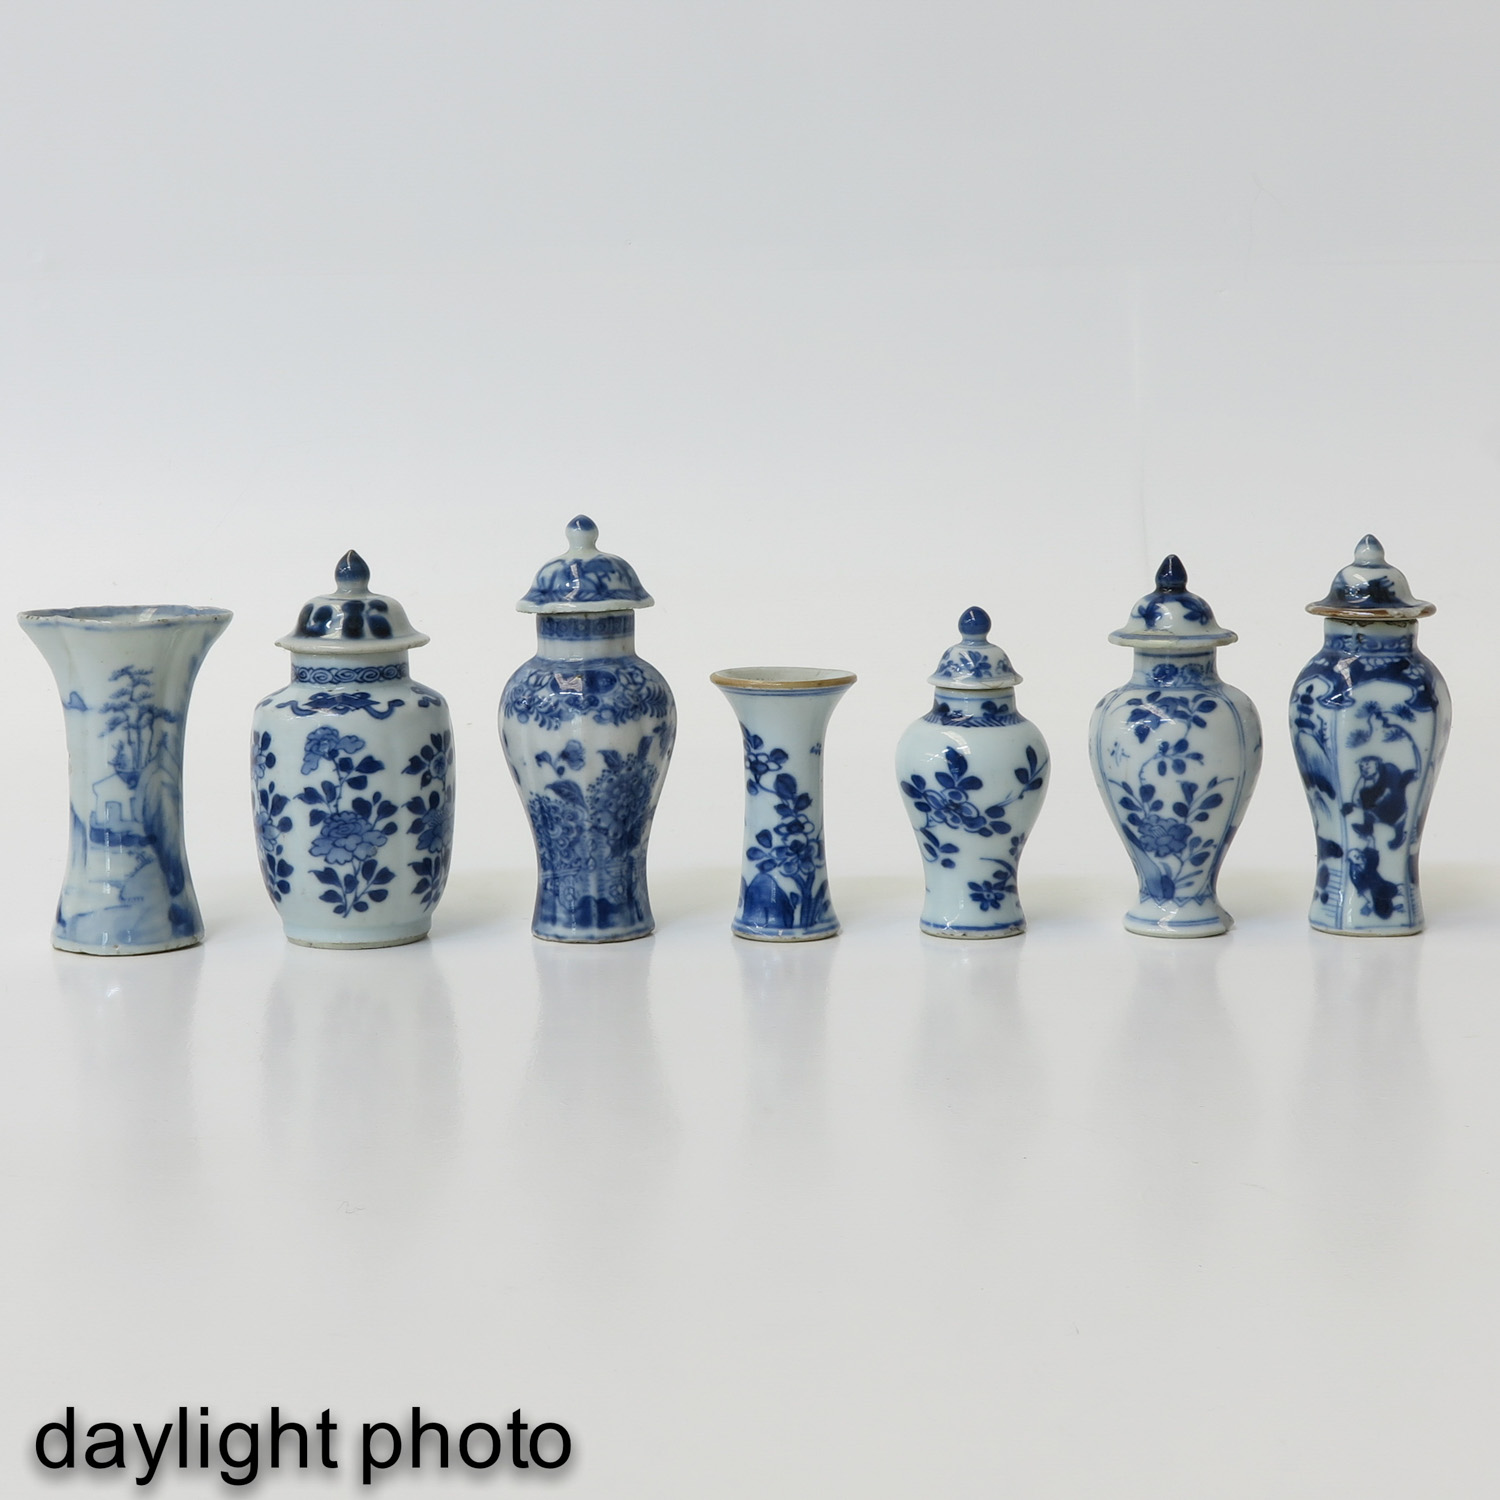 A Collection of 7 Miniature Vases - Image 7 of 9